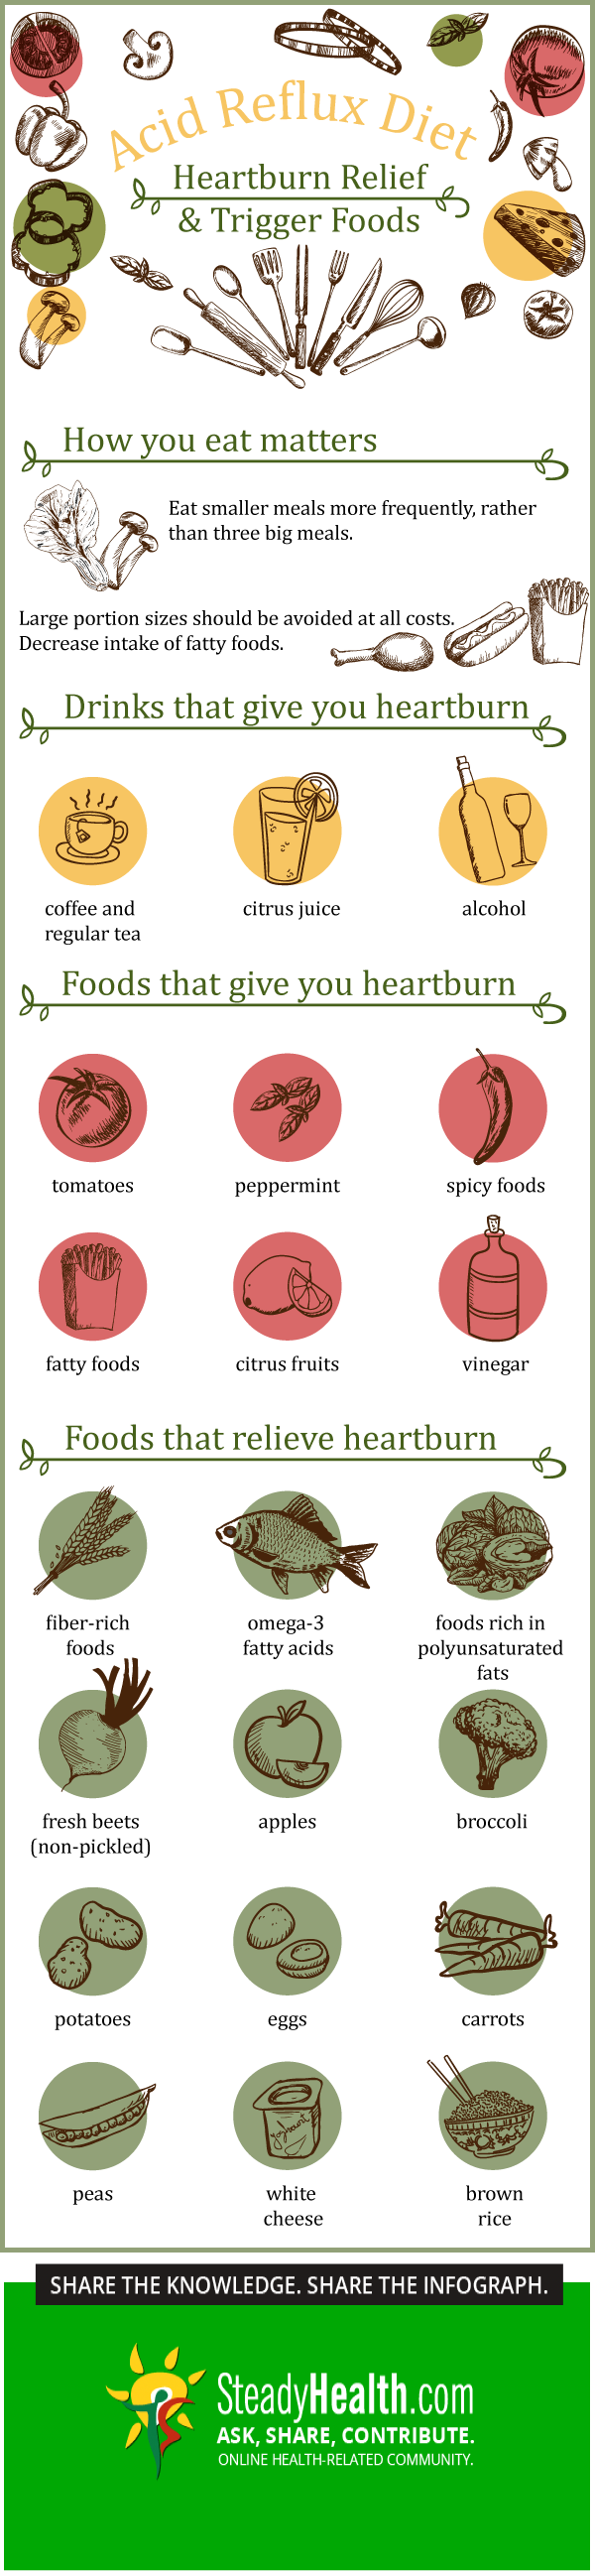 get rid of heartburn fast: with an acid reflux diet, food is a